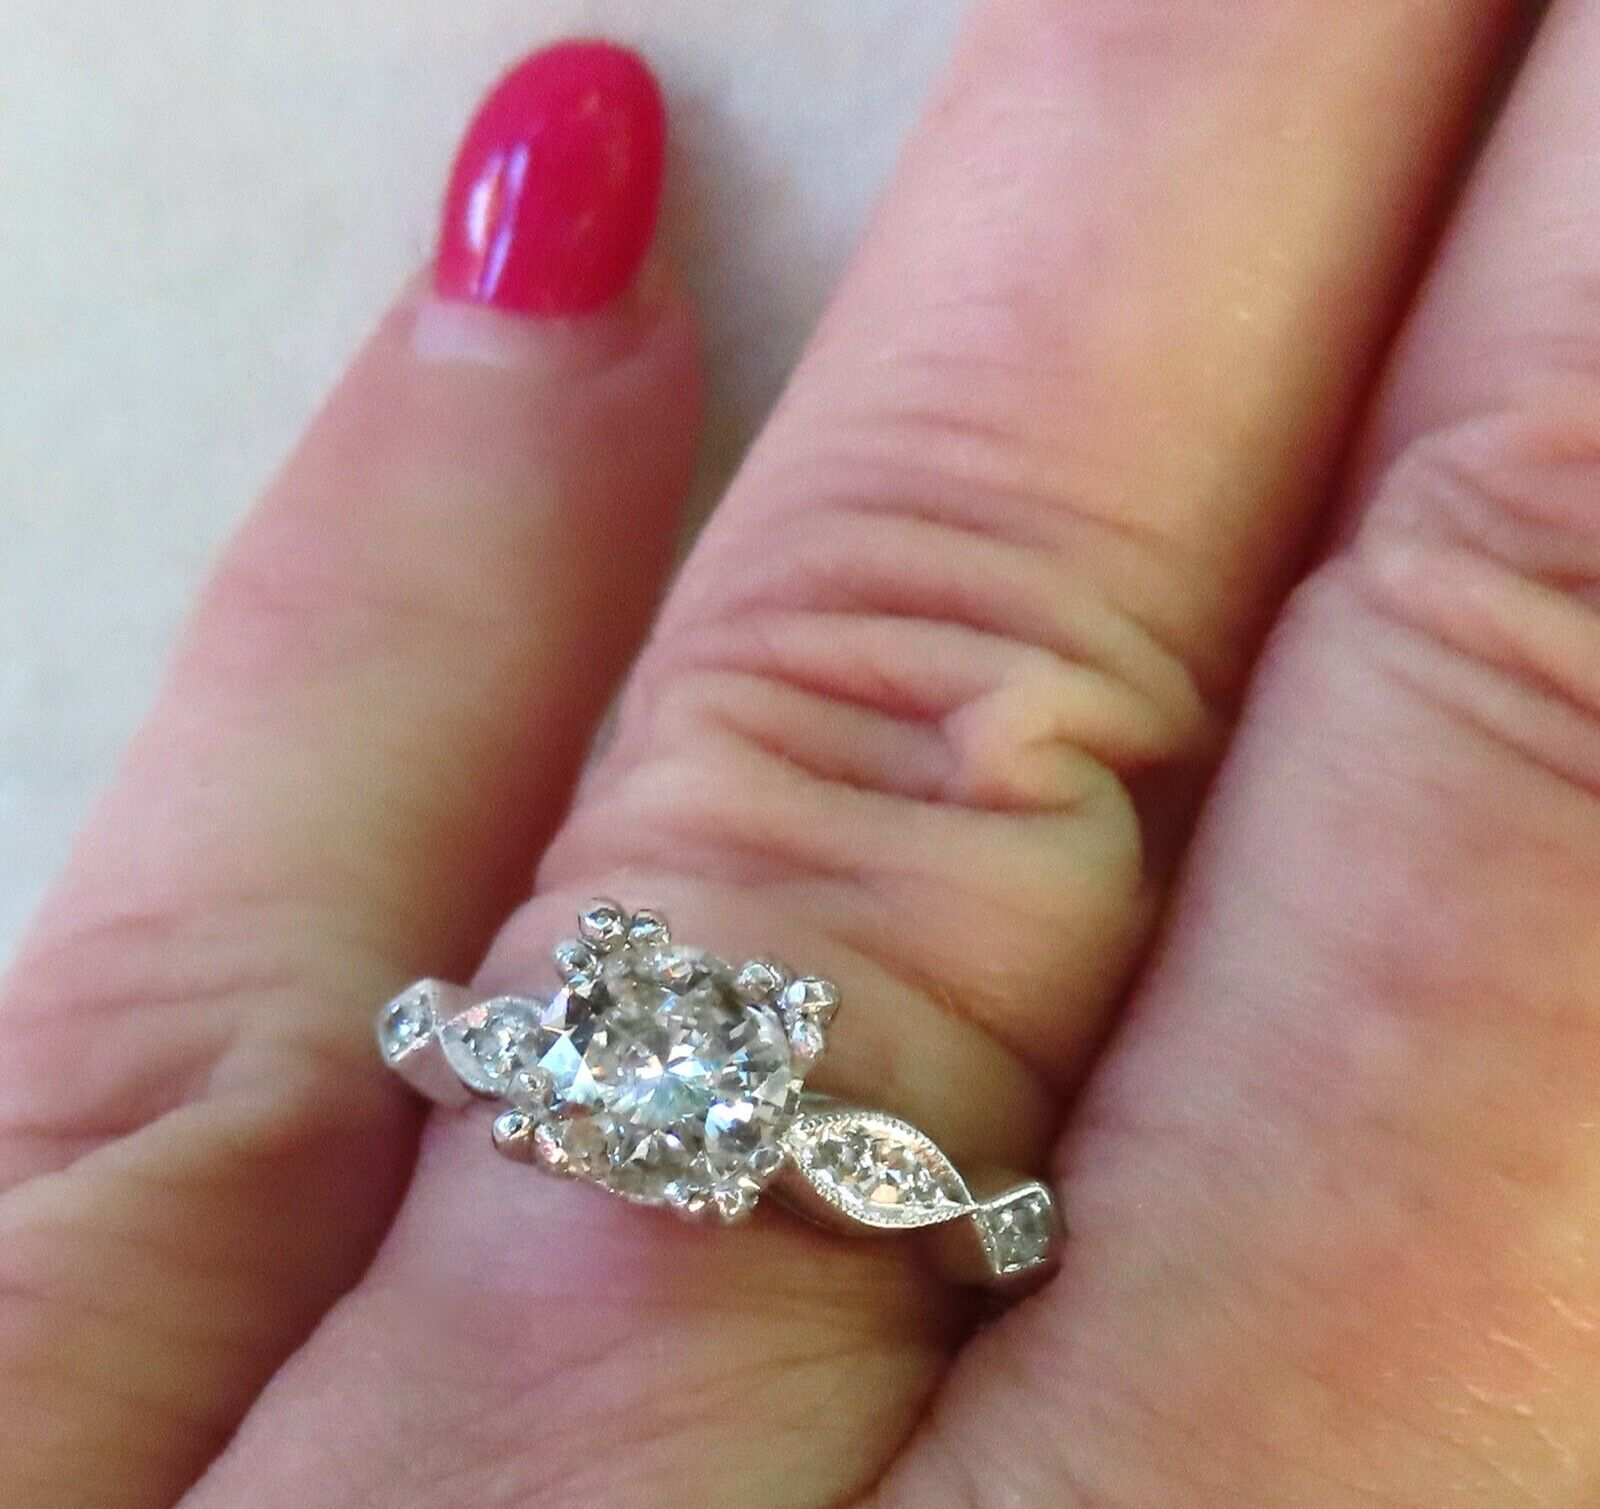 ANTIQUE ART DECO PLATINUM .88 CARAT OLD EUROPEAN CUT DIAMOND ENGAGEMENT RING